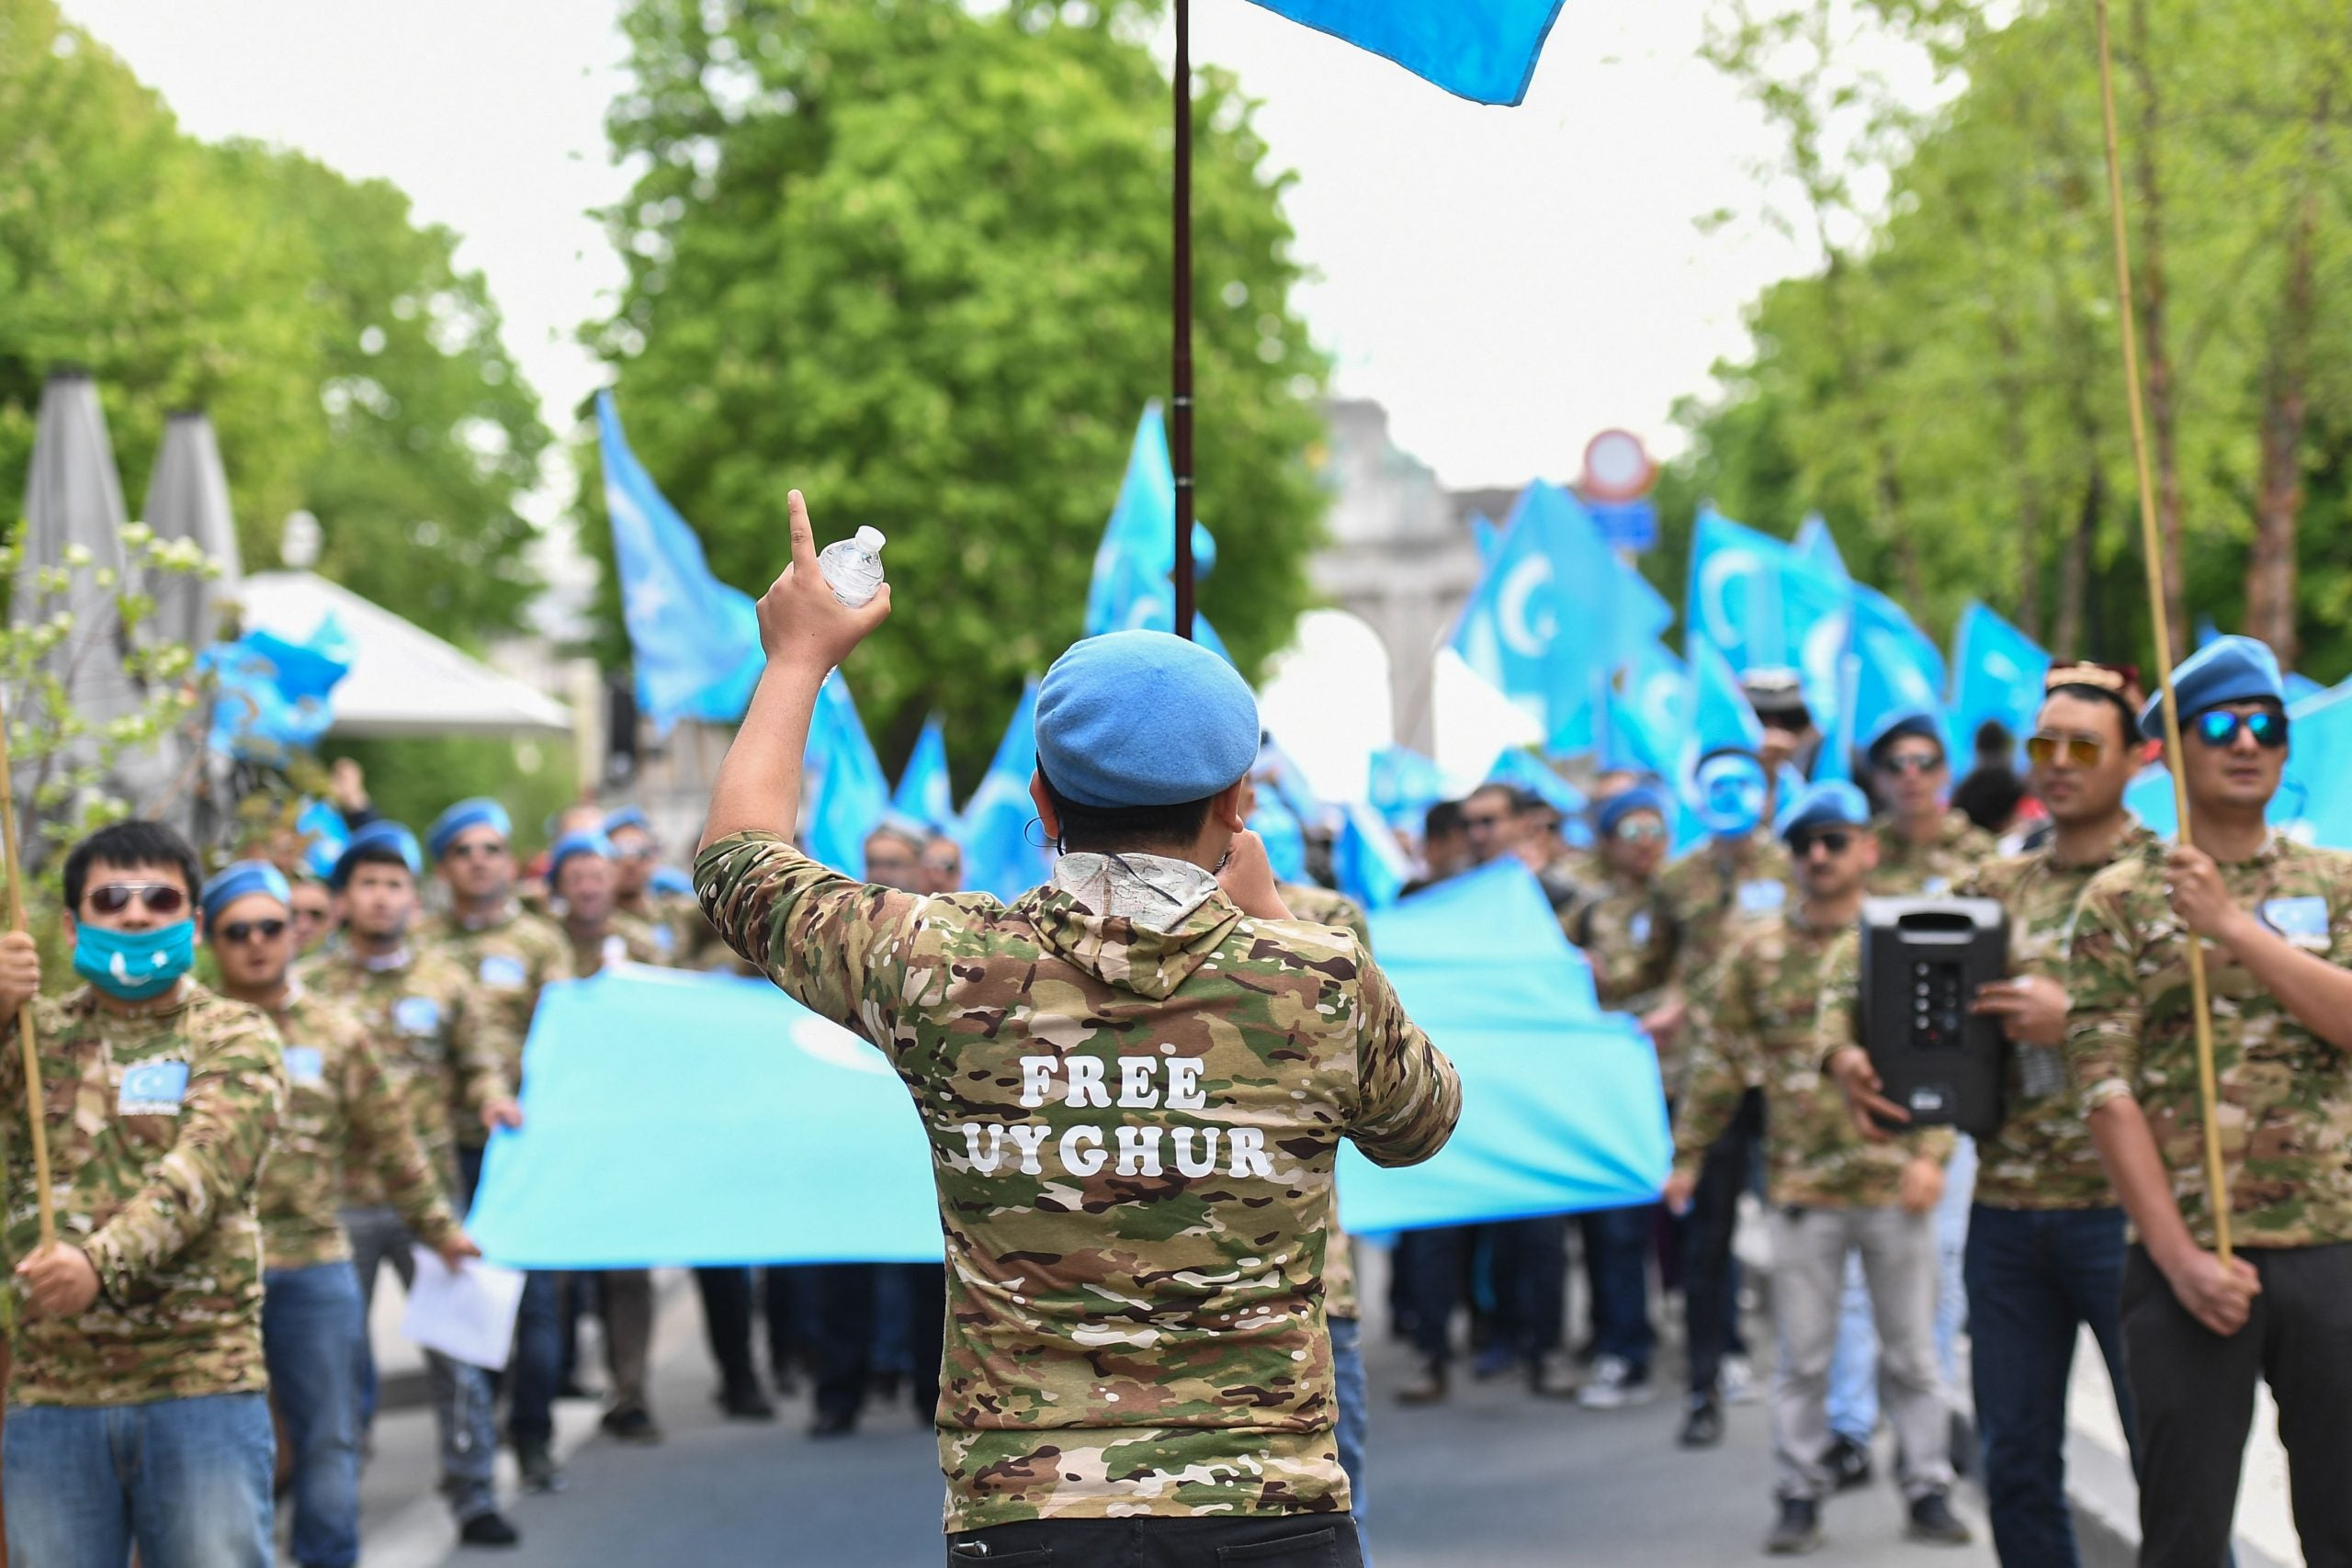 Alistair Carmichael: It's time for the government to speak out against China's repression of the Uyghurs